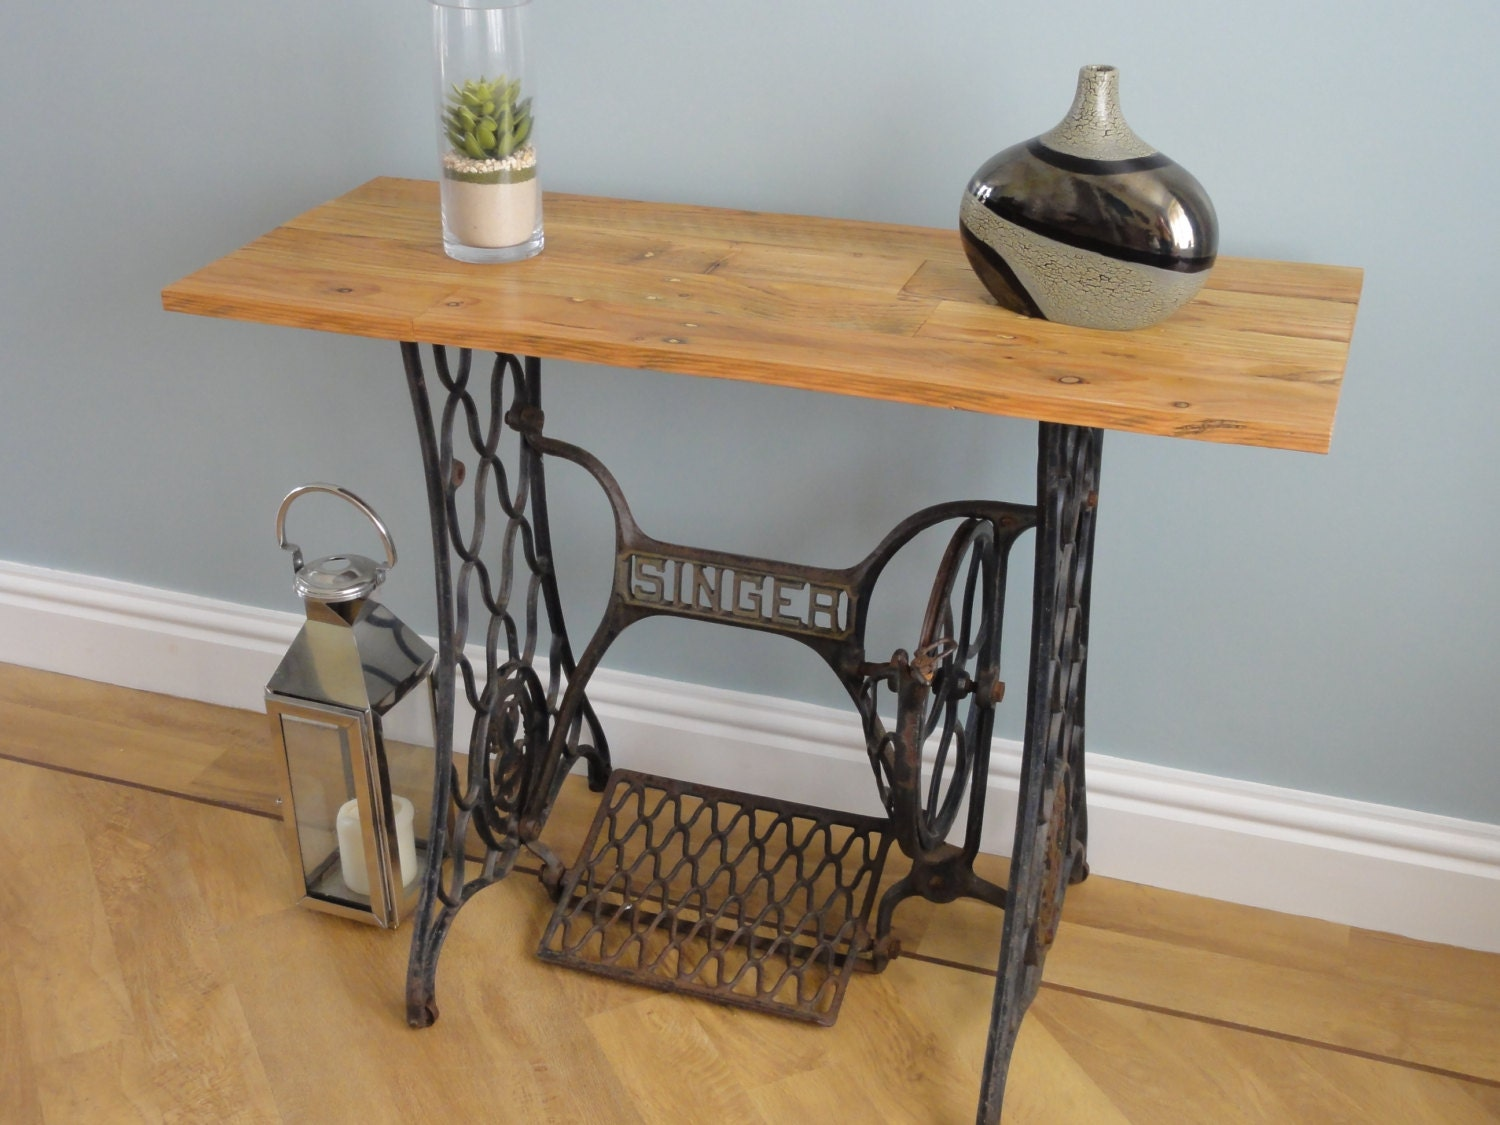 Sewing Machine Table made from a vintage cast-iron Singer ...